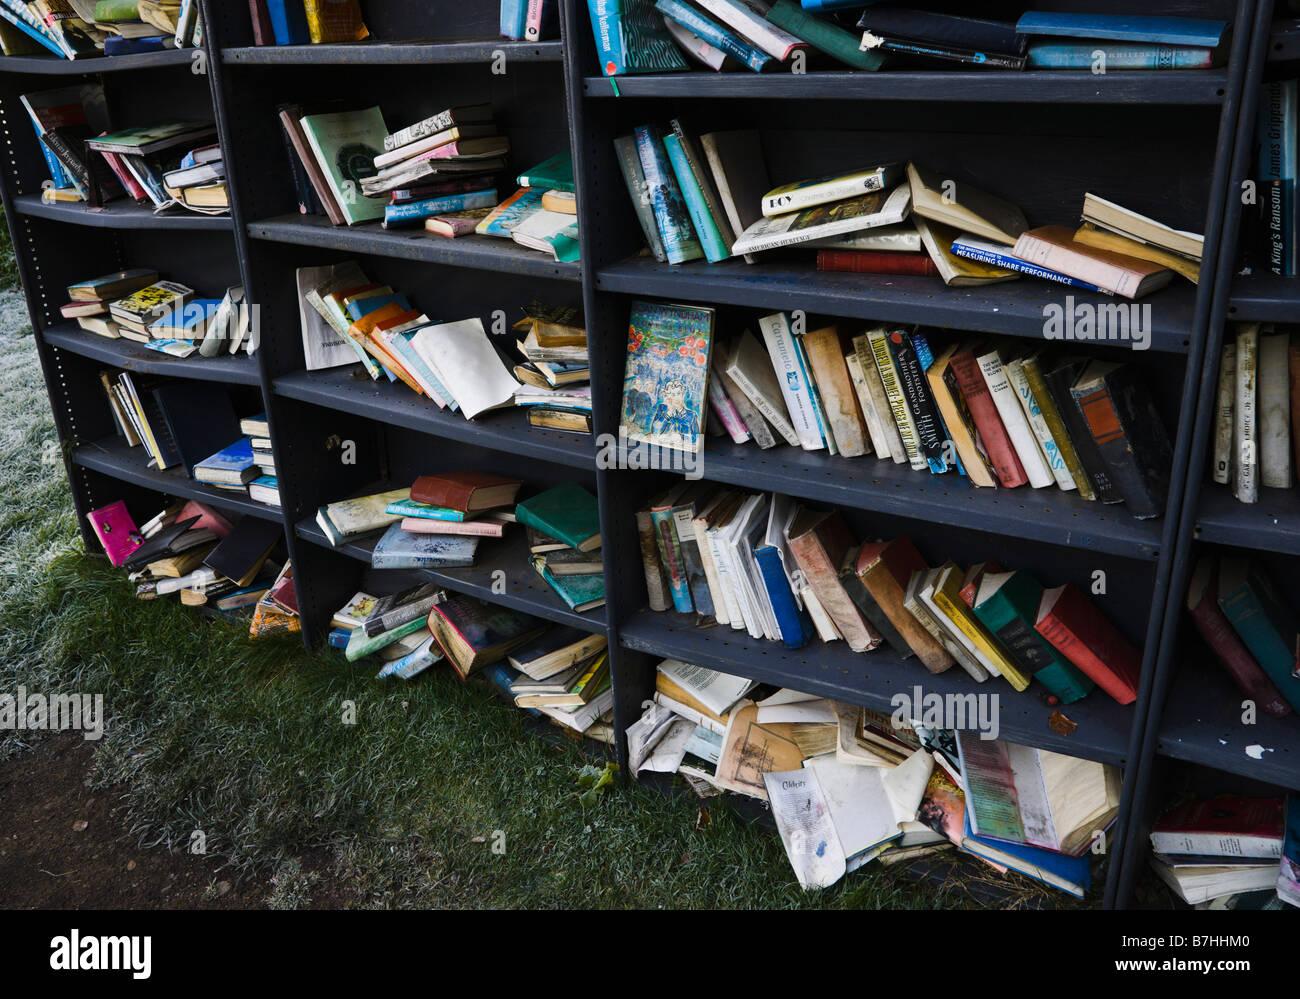 Hay on Wye in Welsh borders secondhand book and antique centre of interest secondhand books piled outdoors - Stock Image